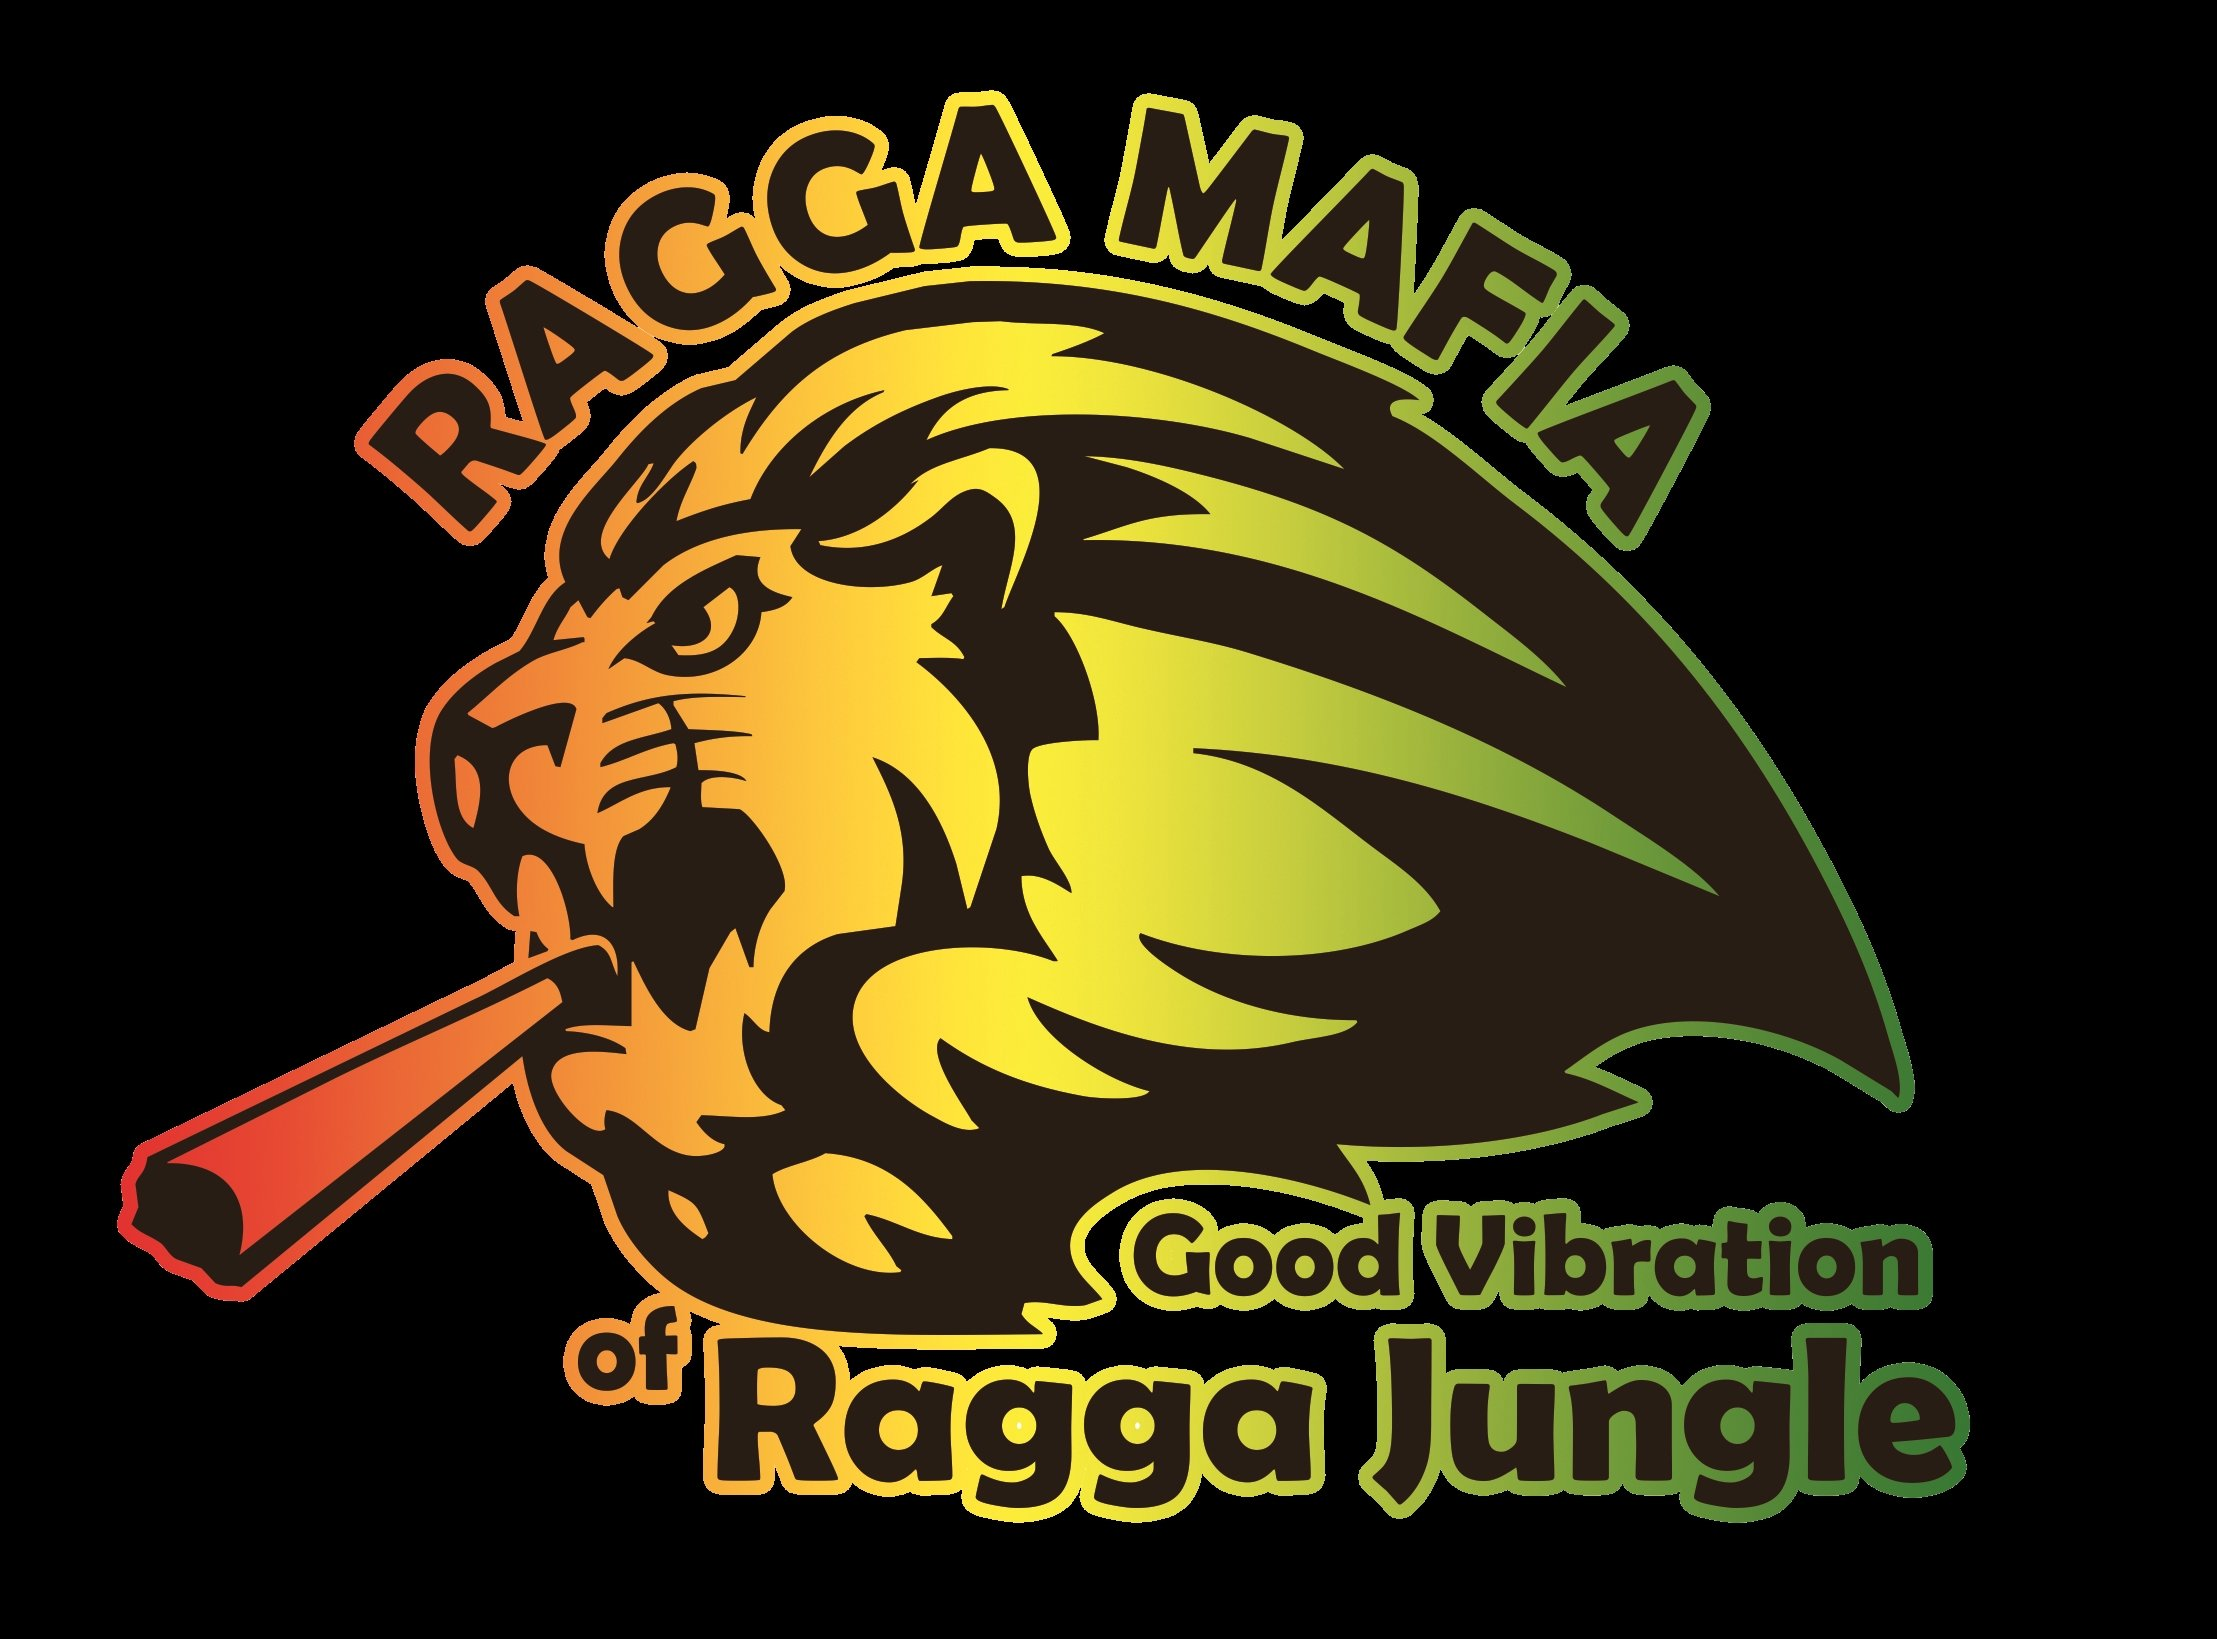  - RAGGA MAFIA